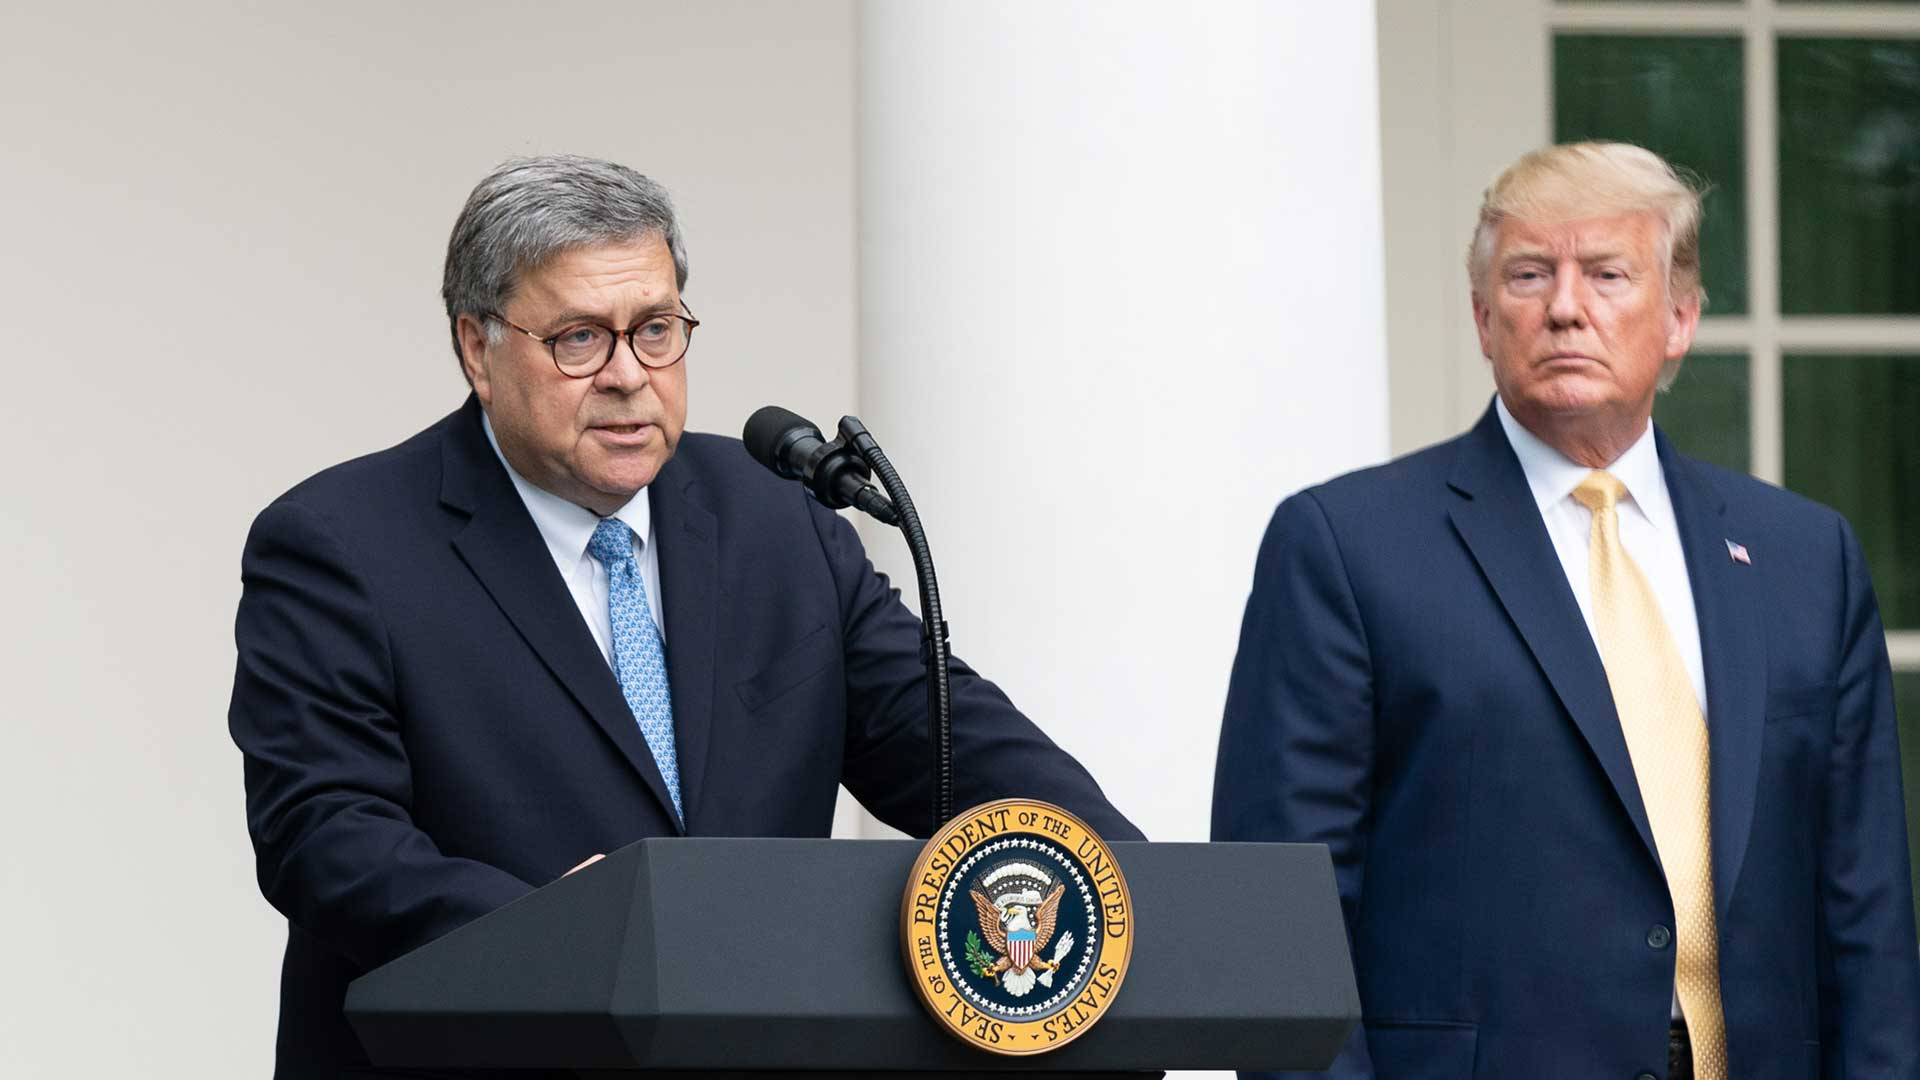 Attorney General Willam Barr speaks at the White House July 11, 2019, as President Donald Trump looks on.